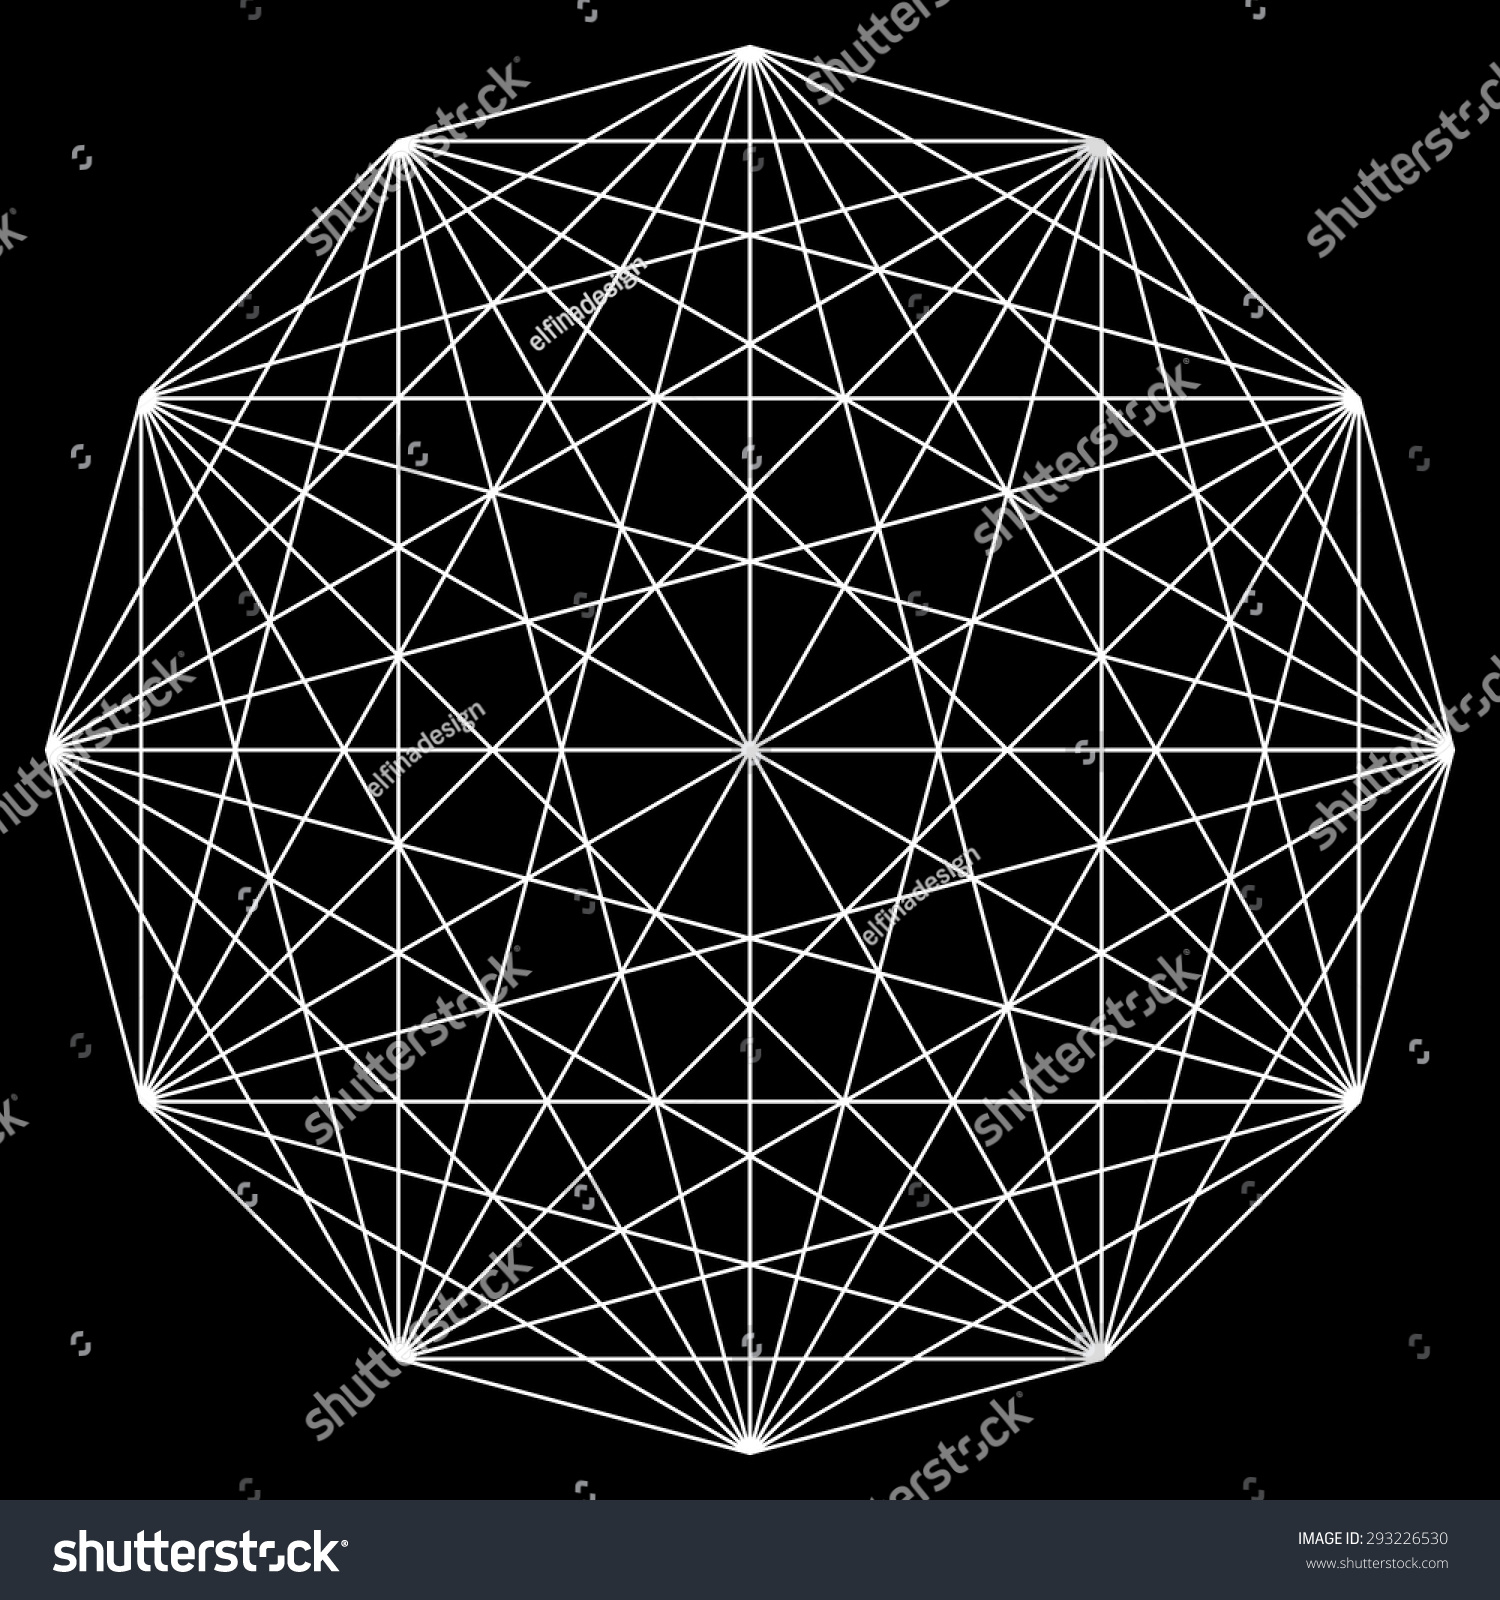 Line Art Design Geometry : Line drawing mandala sacred geometry logo stock vector